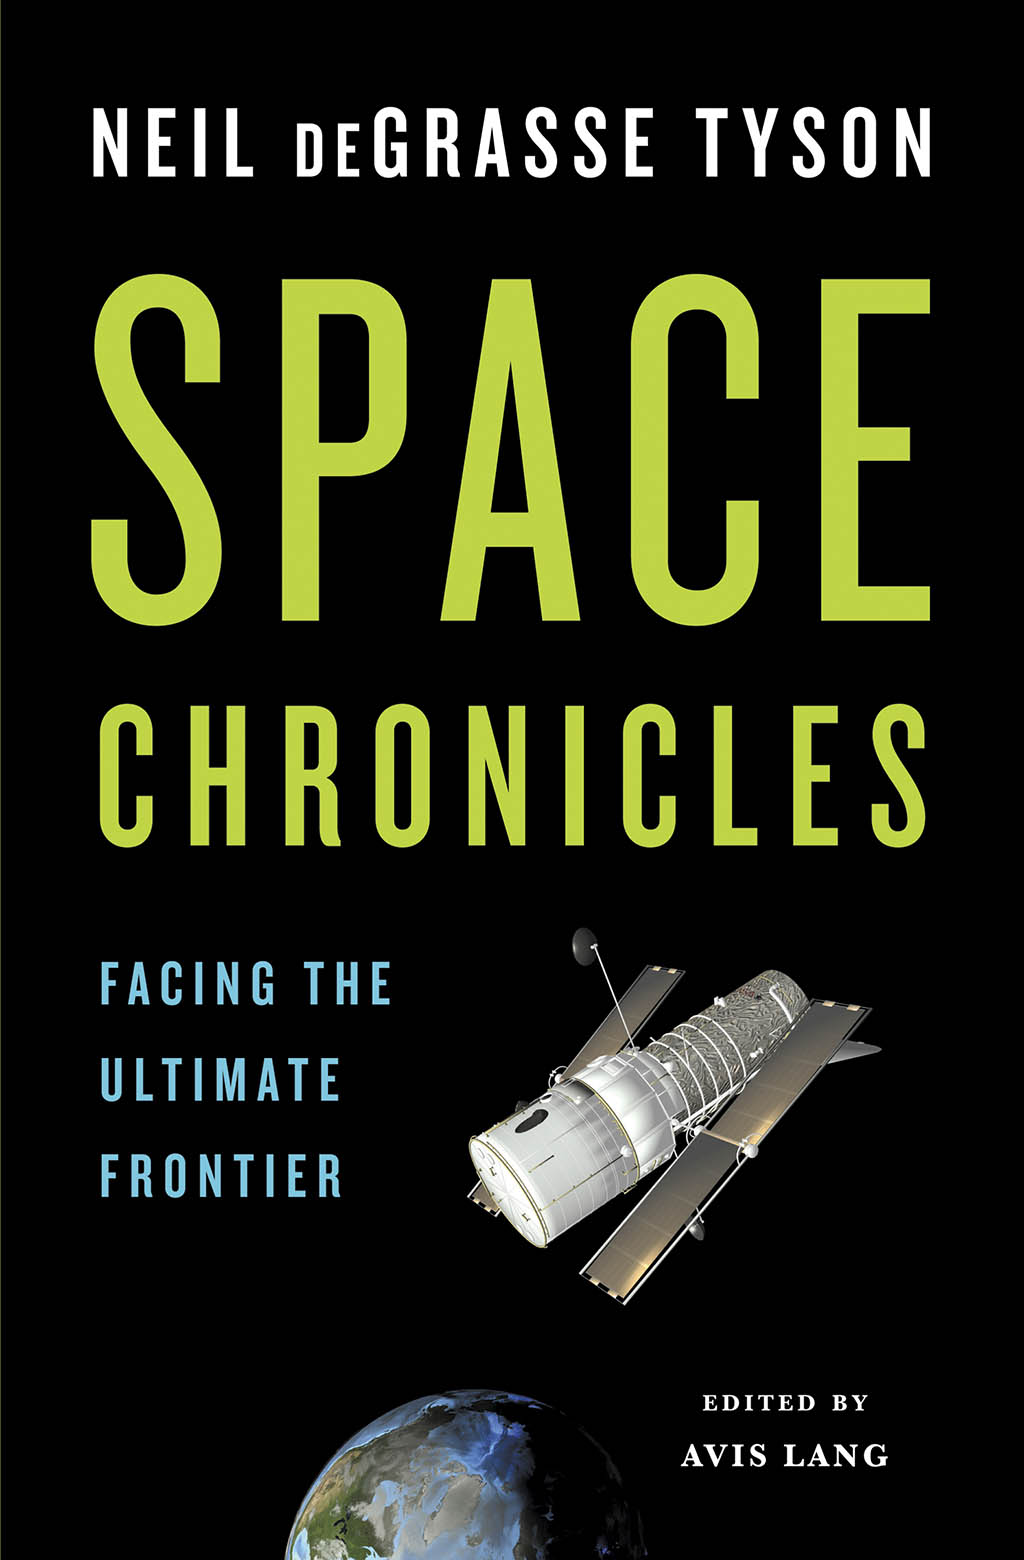 Space Chronicles book cover, with big, bold green title on a balck background. In the lower part of the cover is earth with the Hubble Space Telescope hovering above in the foreground.